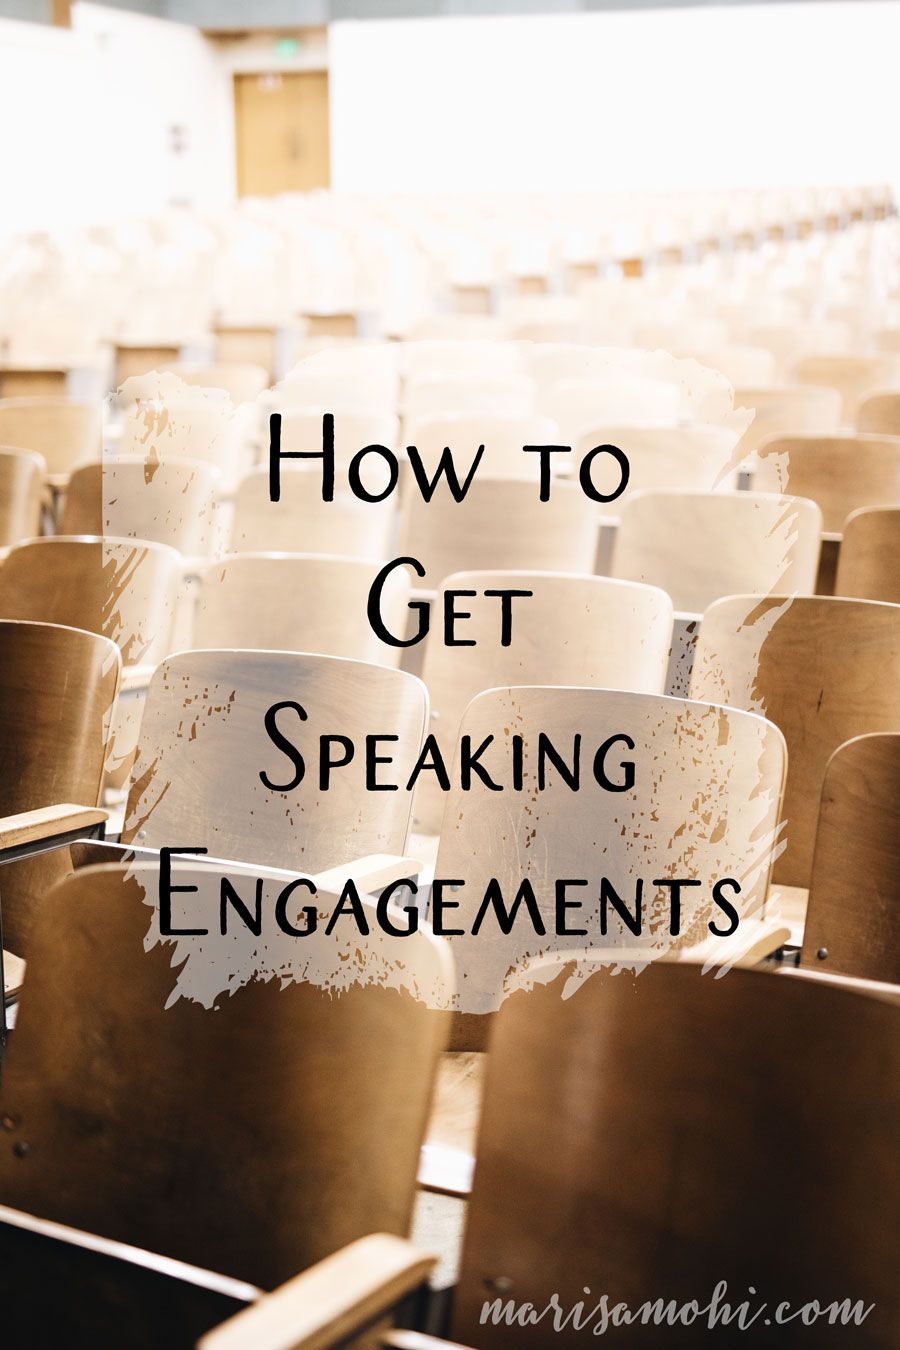 How to Get Speaking Engagements | So you've built your platform and you're ready to hit the stage to share your knowledge at the next big conference. But first, you need to know how to get speaking engagements. Today I'm sharing my tips for how to find speaking engagements and ways to get public speaking experience.